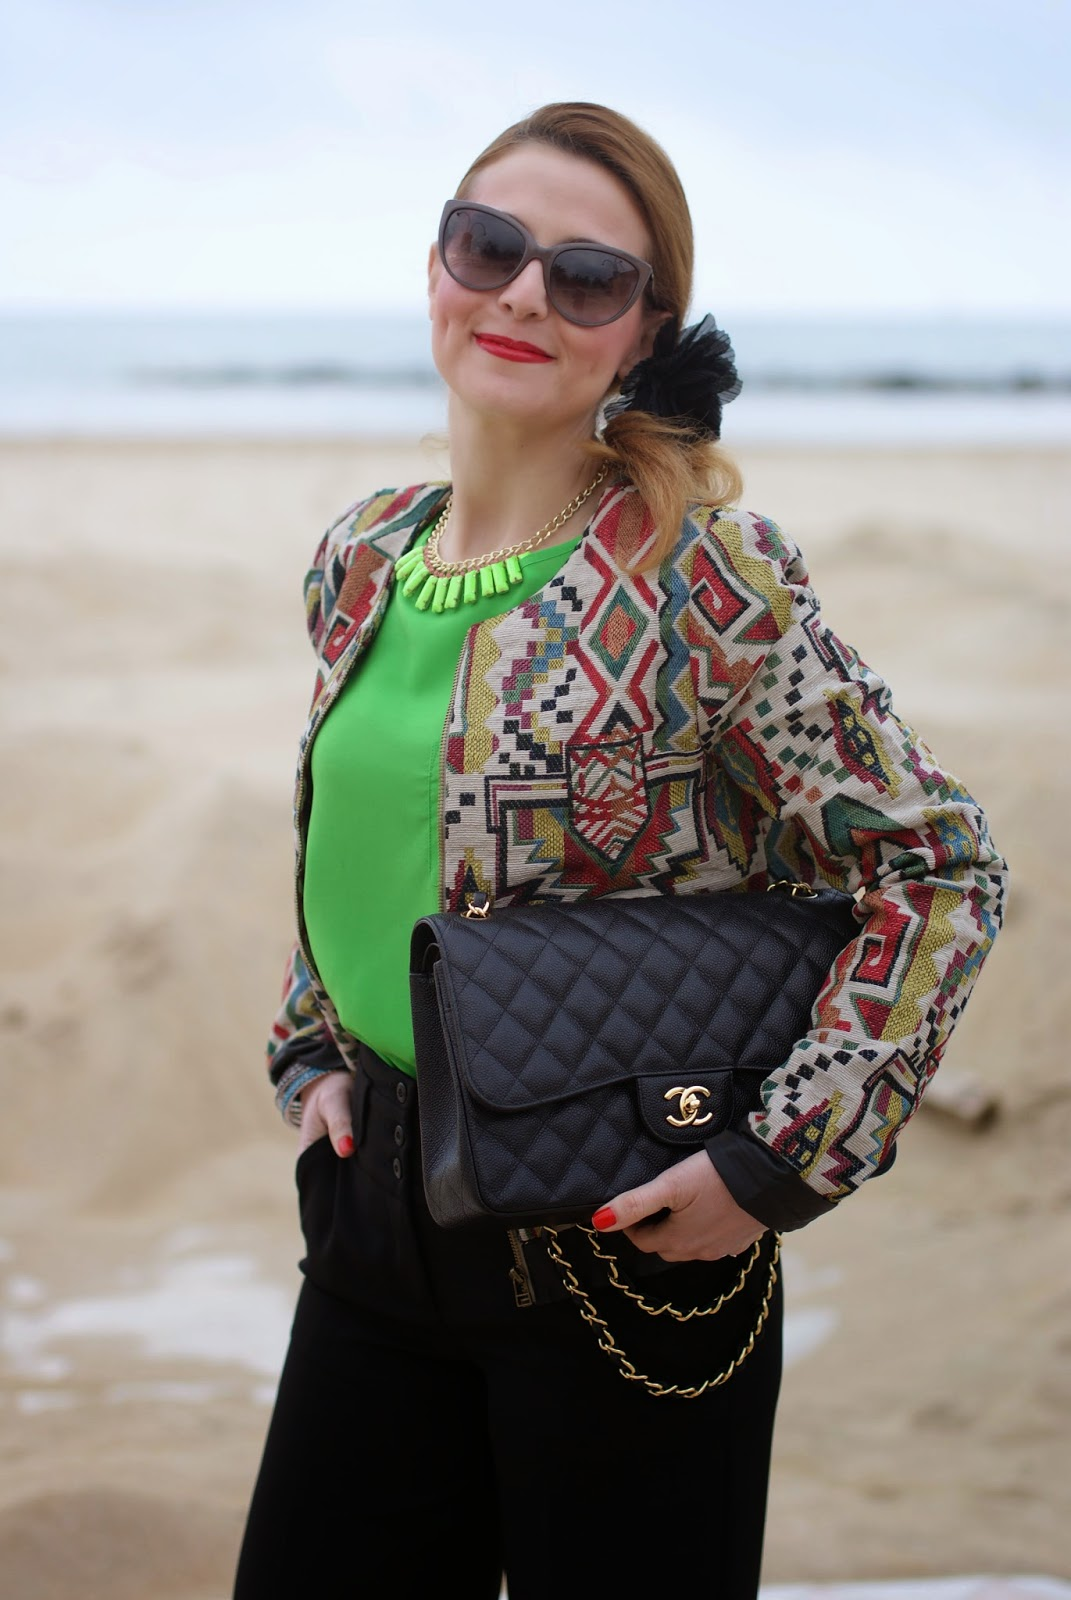 Chanel 2.55 classic flap bag, neon green blouse, Paramita jacket, bomber jacket, Moliabal elastico capelli, palazzo pants, Lunatic pantaloni, sided ponytail, Fashion and Cookies fashion blog, fashion blogger